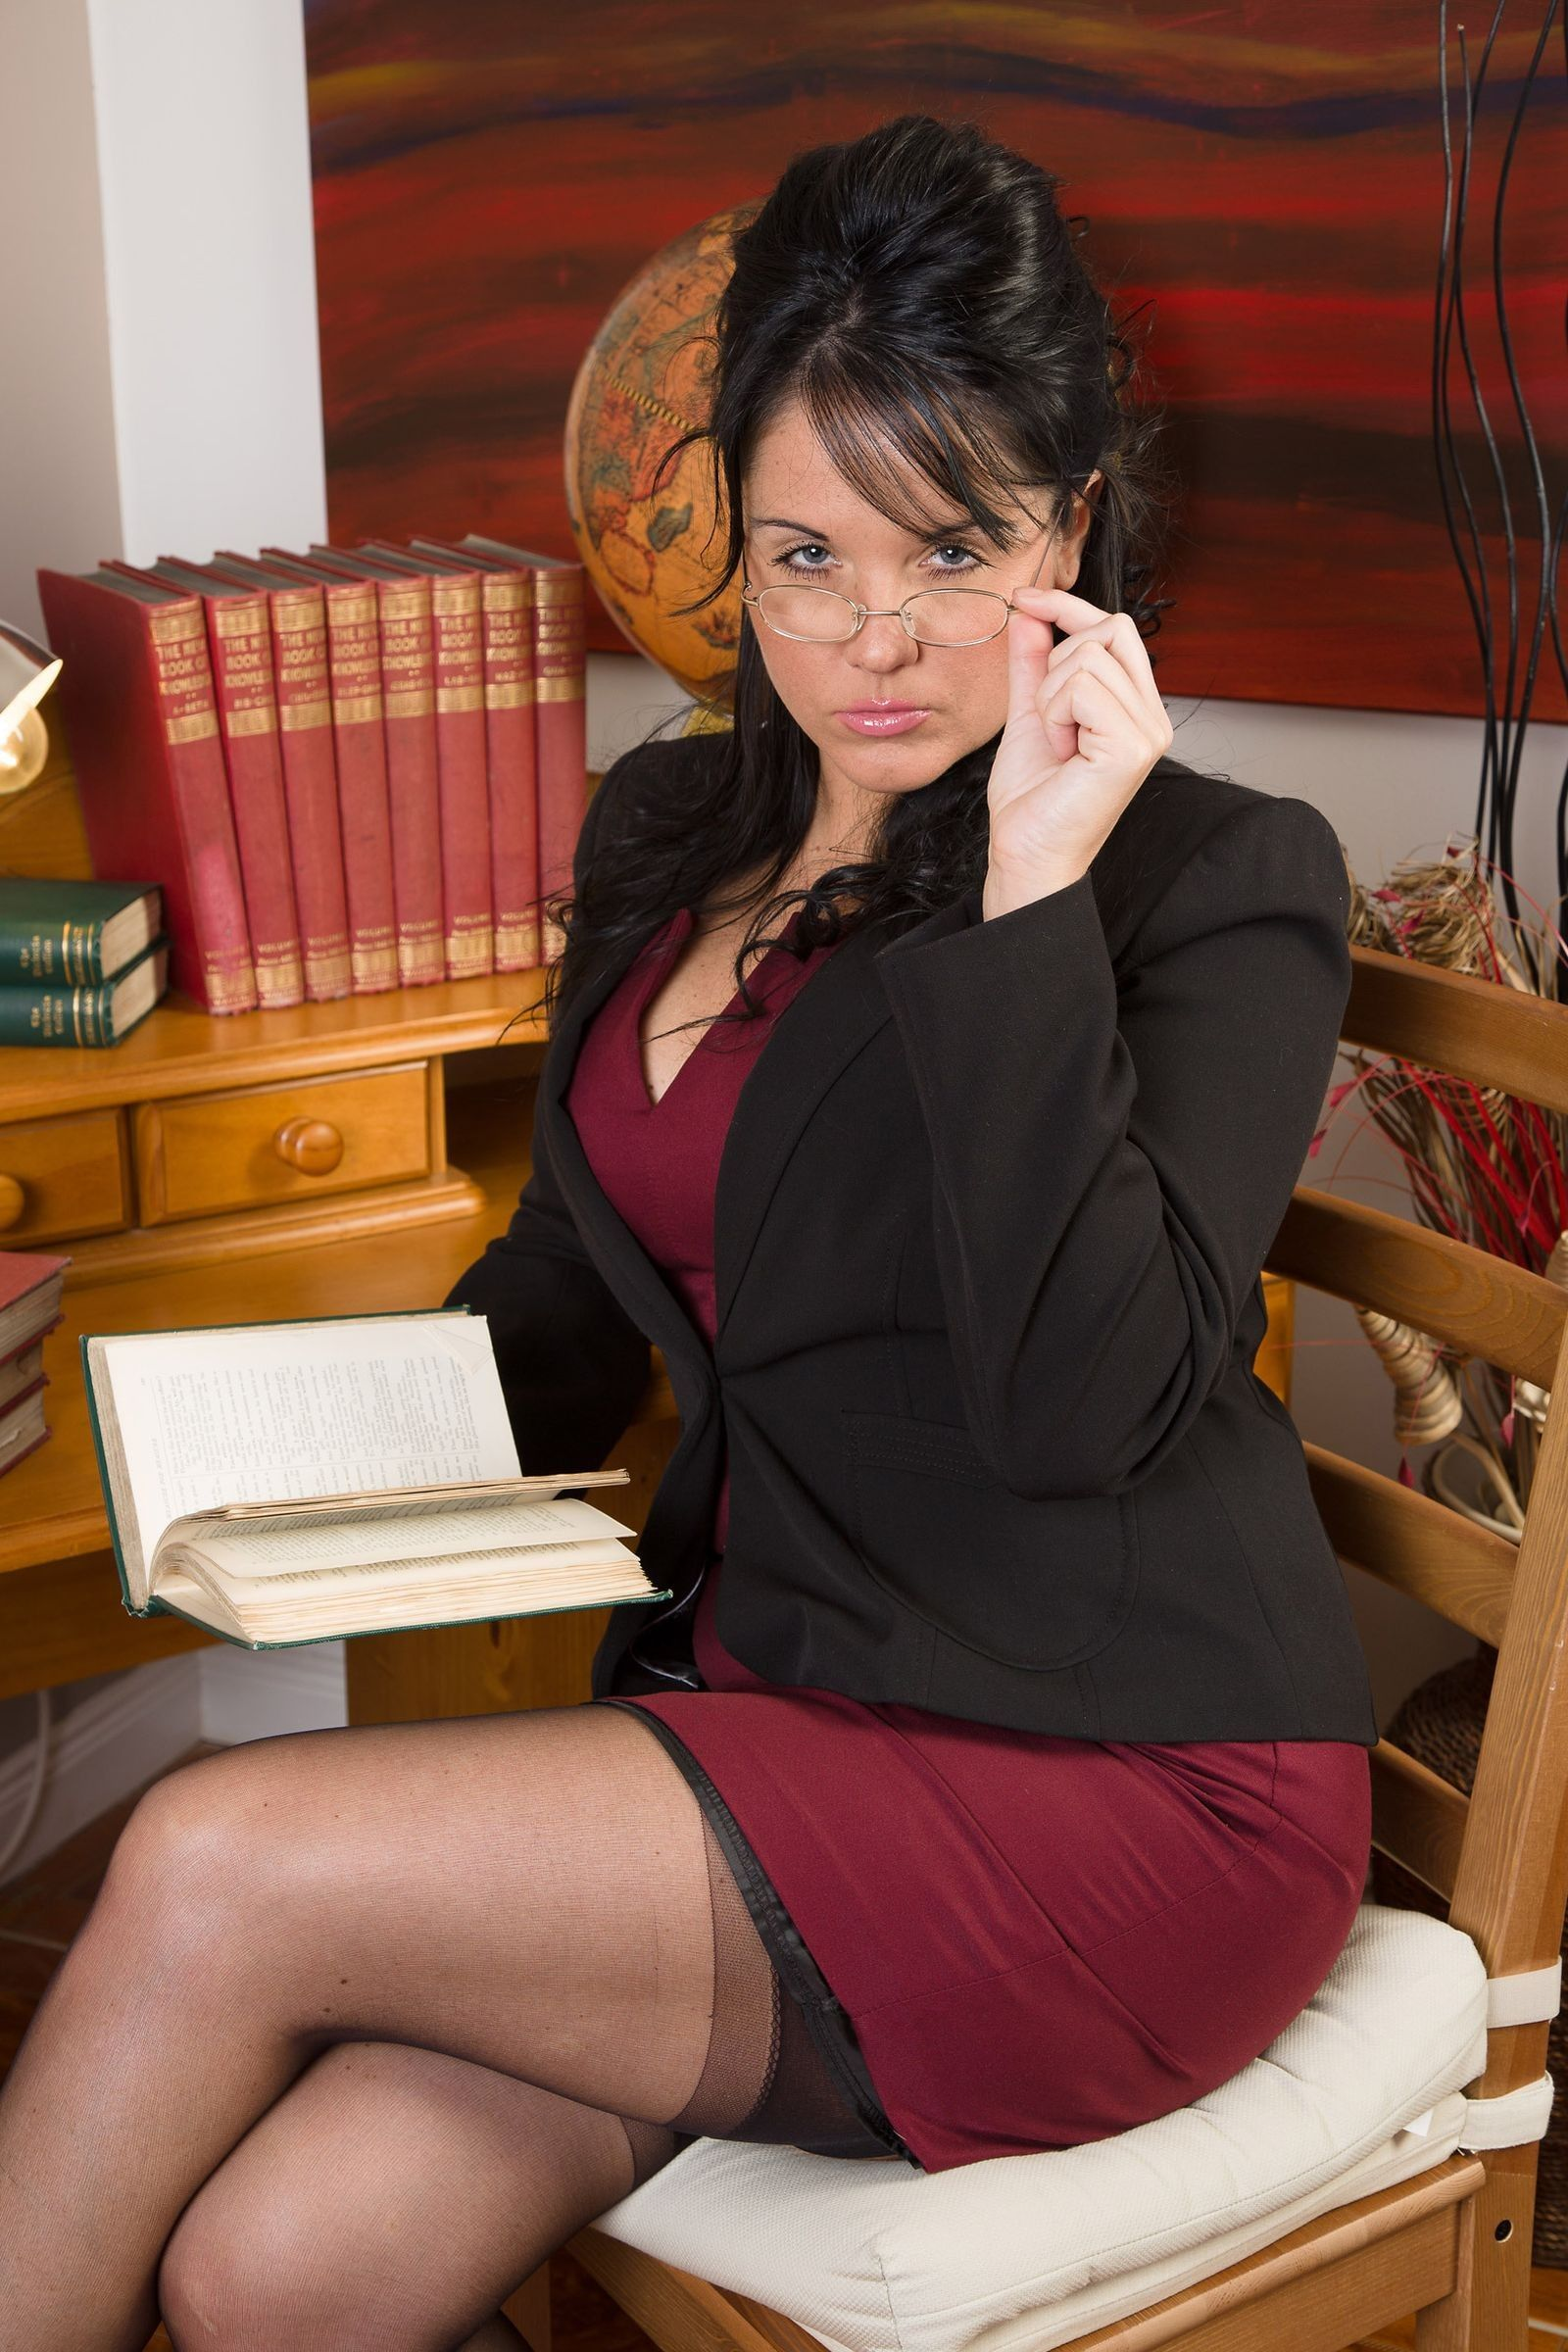 Pin on Sexy women in the office